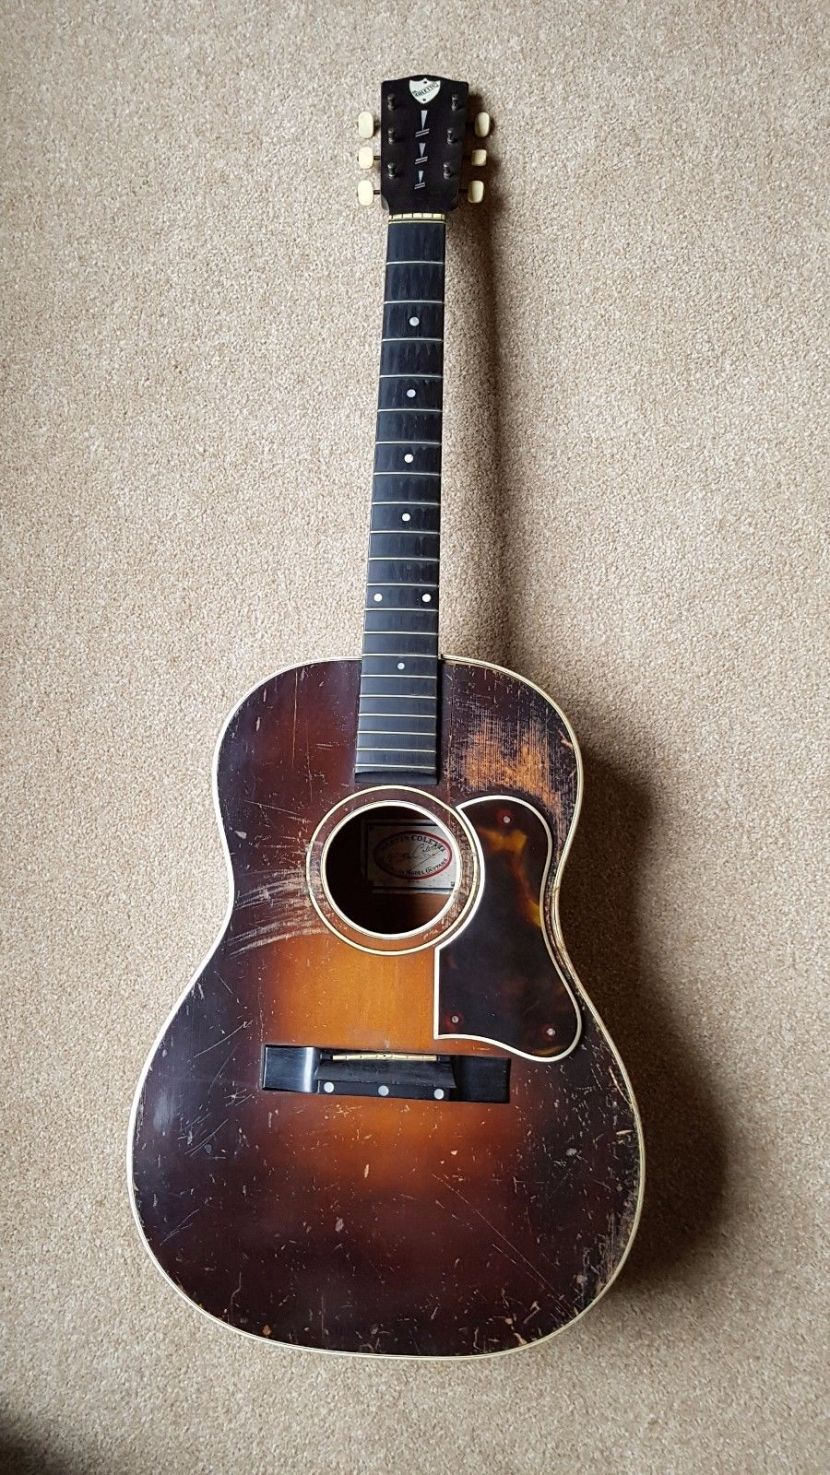 A battered Martin Coletti G40 guitar